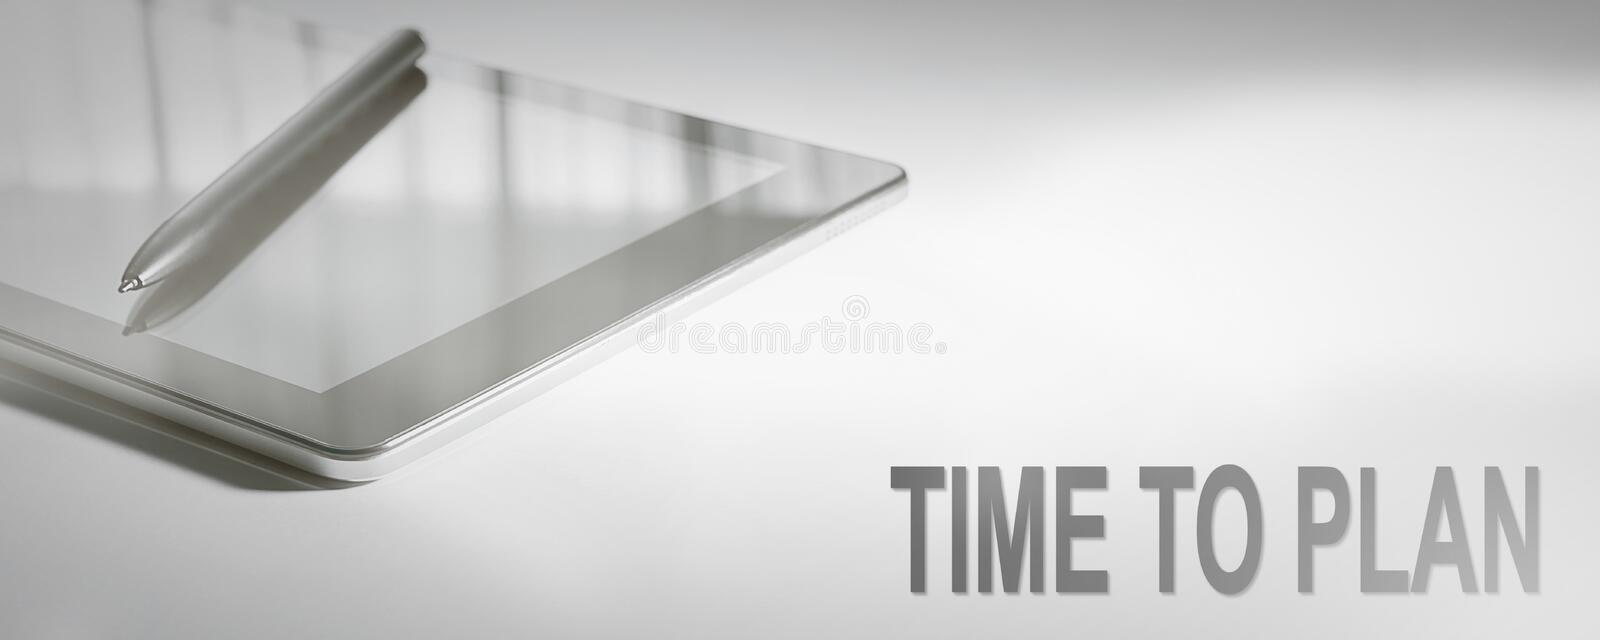 TIME TO PLAN Business Concept Digital Technology. royalty free stock images